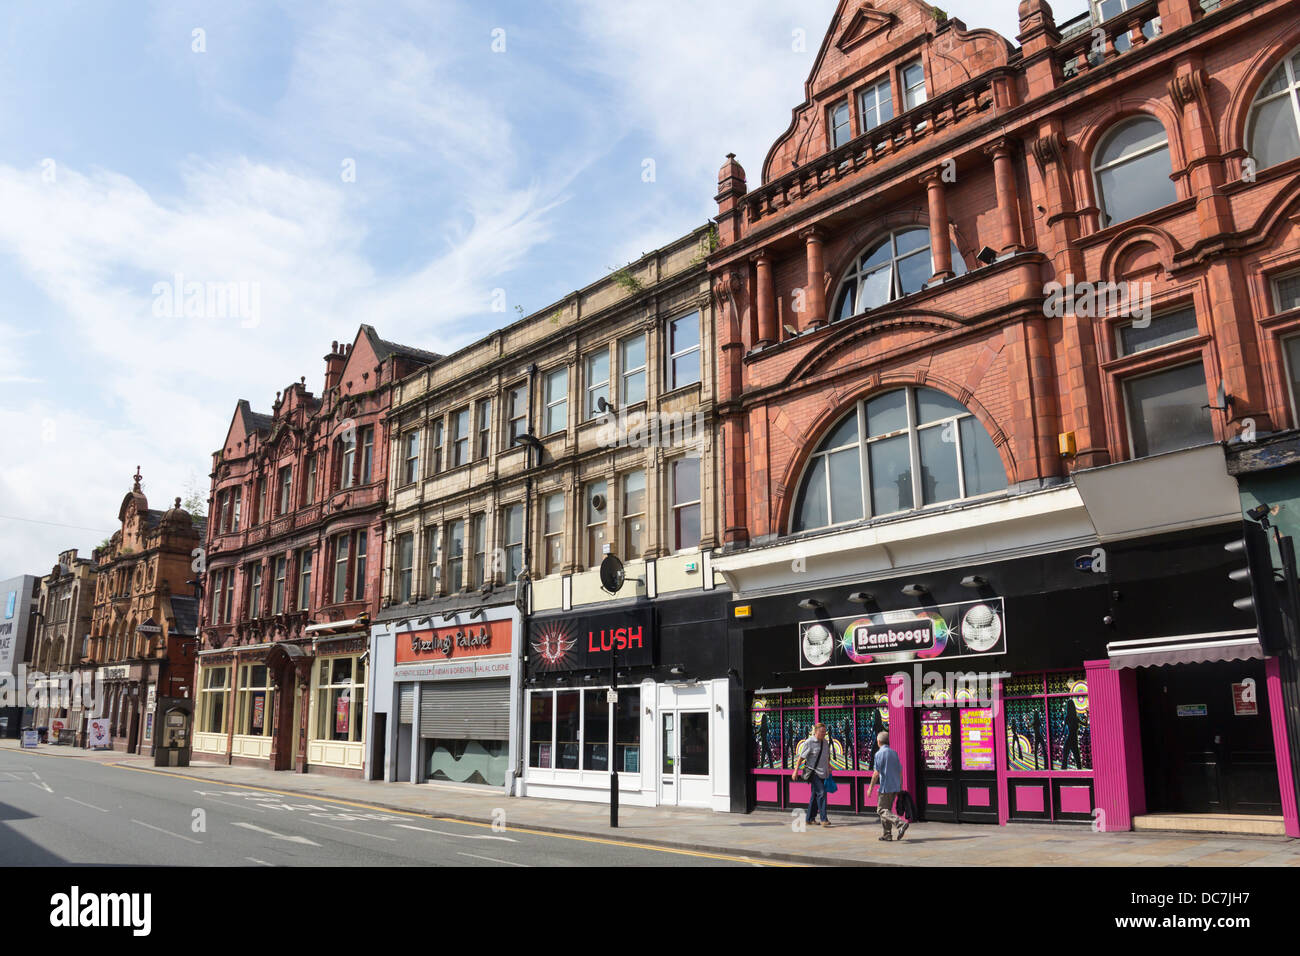 Buildings on the west side of Bradshawgate in Bolton, Lancashire with many bars, pubs, nightclubs. - Stock Image